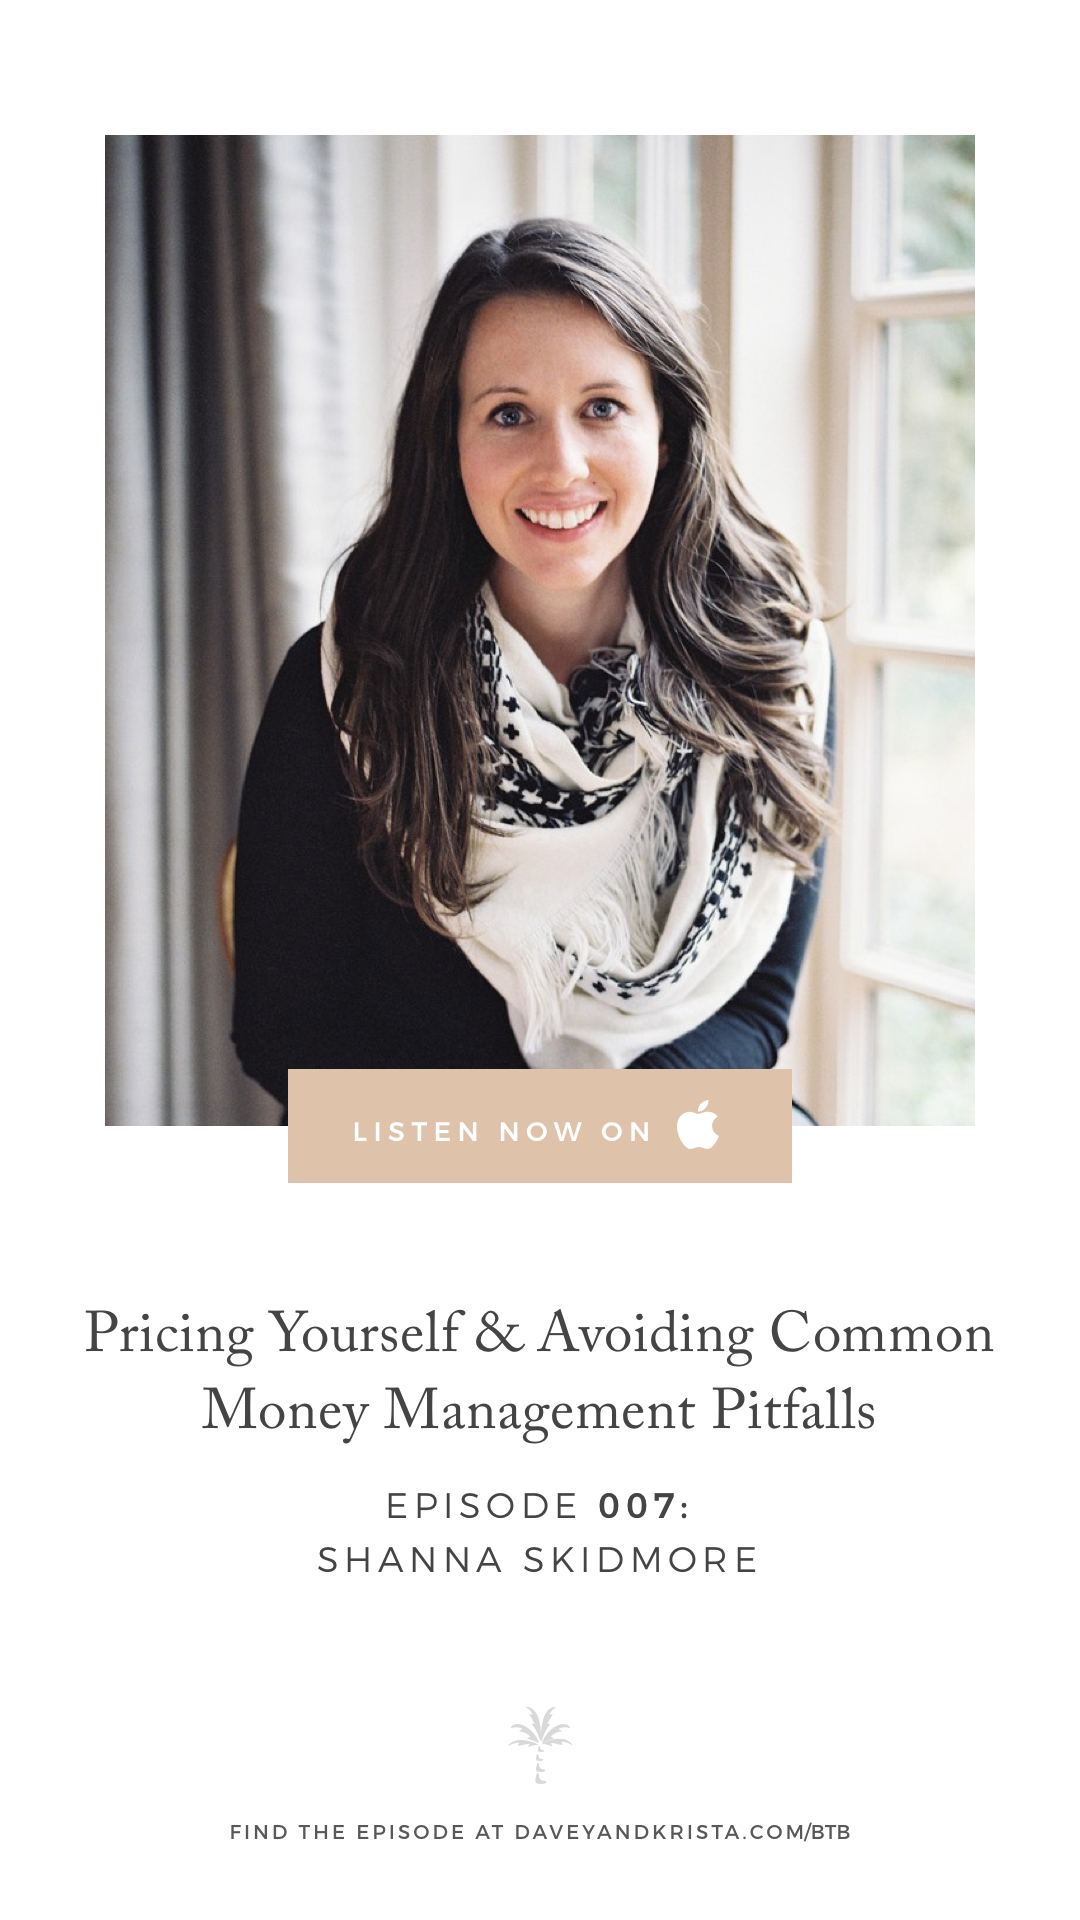 Pricing Yourself & Avoiding Common Money Management Pitfalls in Business | Brands that Book Podcast | Davey & Krista